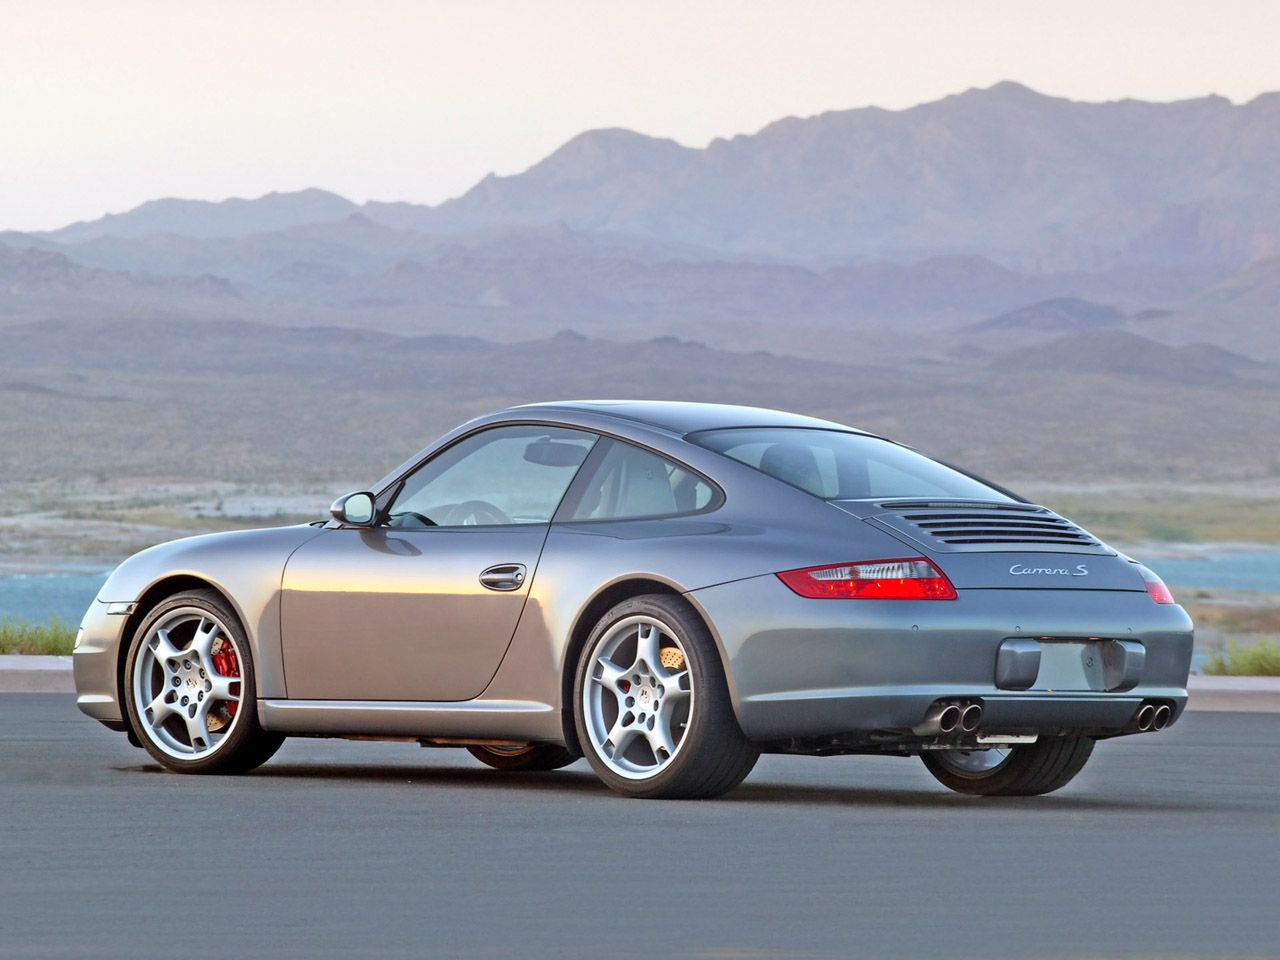 Porsche 911 carrera s pictures cars wallpaper pictures of car porsche porsche pictures porsche wallpaper